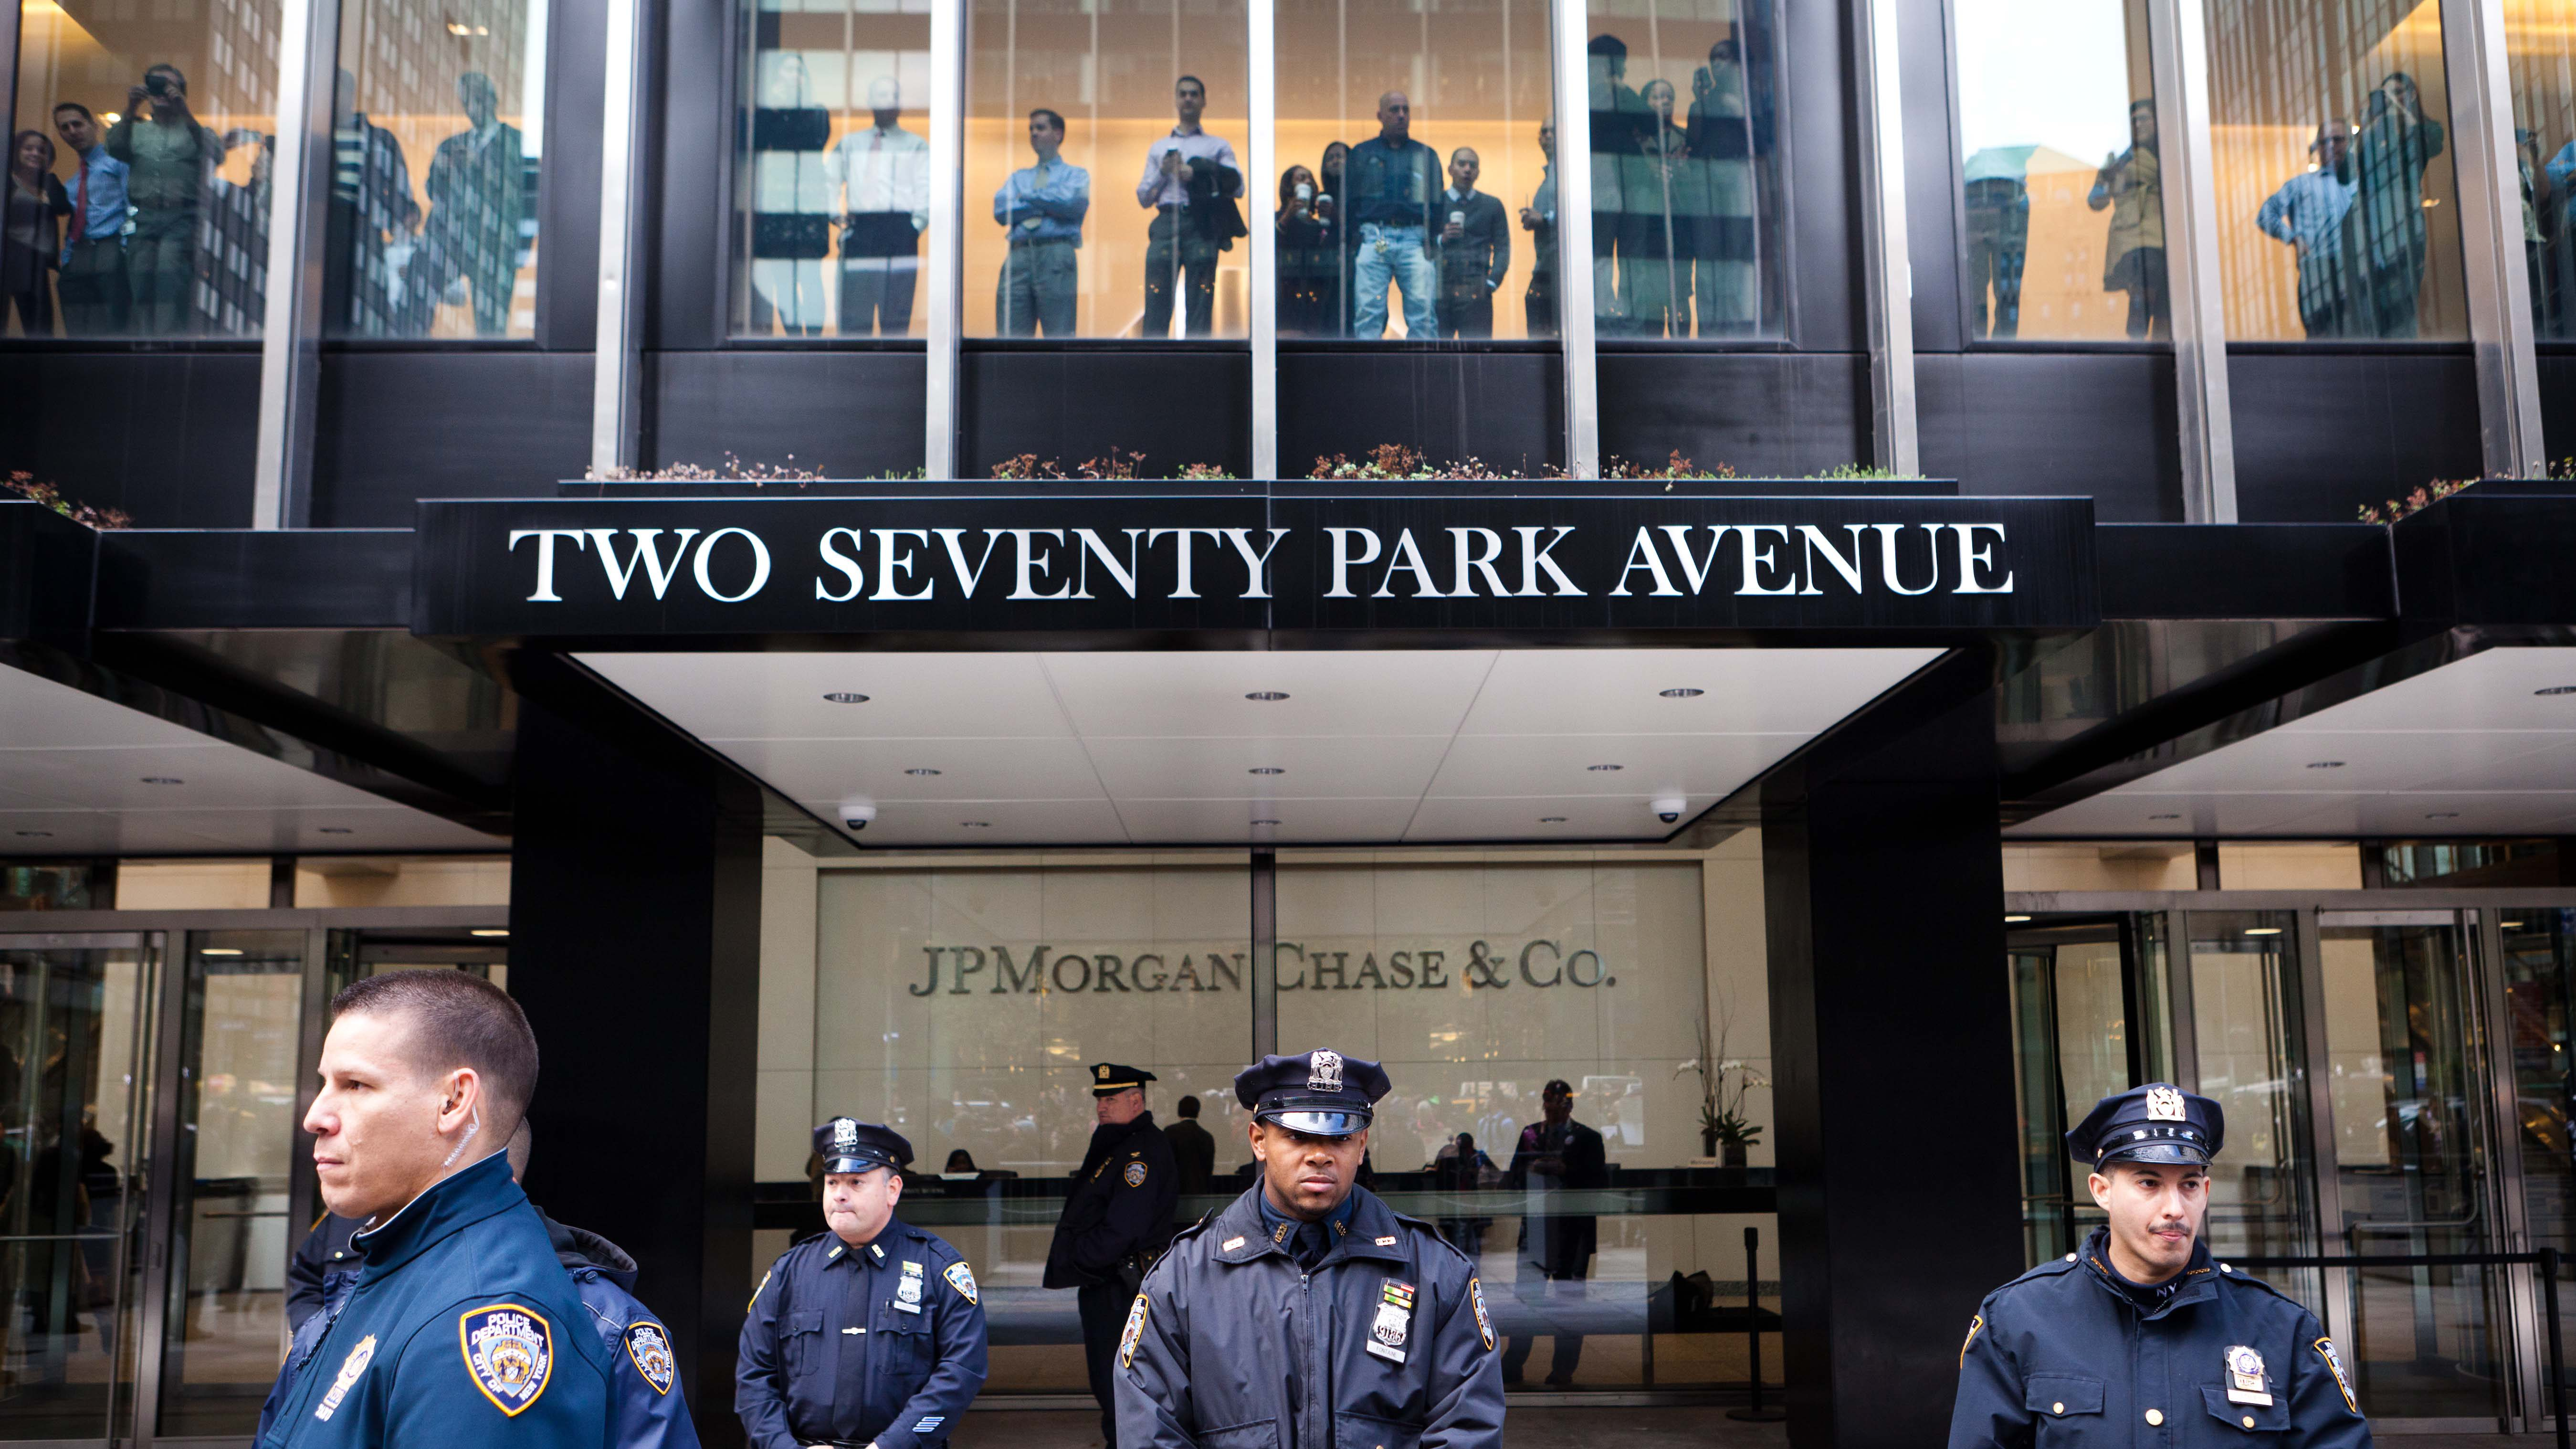 Police officers stand guard as employees look out from inside at marching Occupy Wall Street protestors near the JP Morgan Chase corporate headquarters on Park Avenue in New York on Friday, Oct. 28, 2011. Nearly 400 OccupyWallStreet protesters carried what they said were 7,000 letters of complaint to offices of banks they accuse of corporate greed. (AP Photo/John Minchillo)